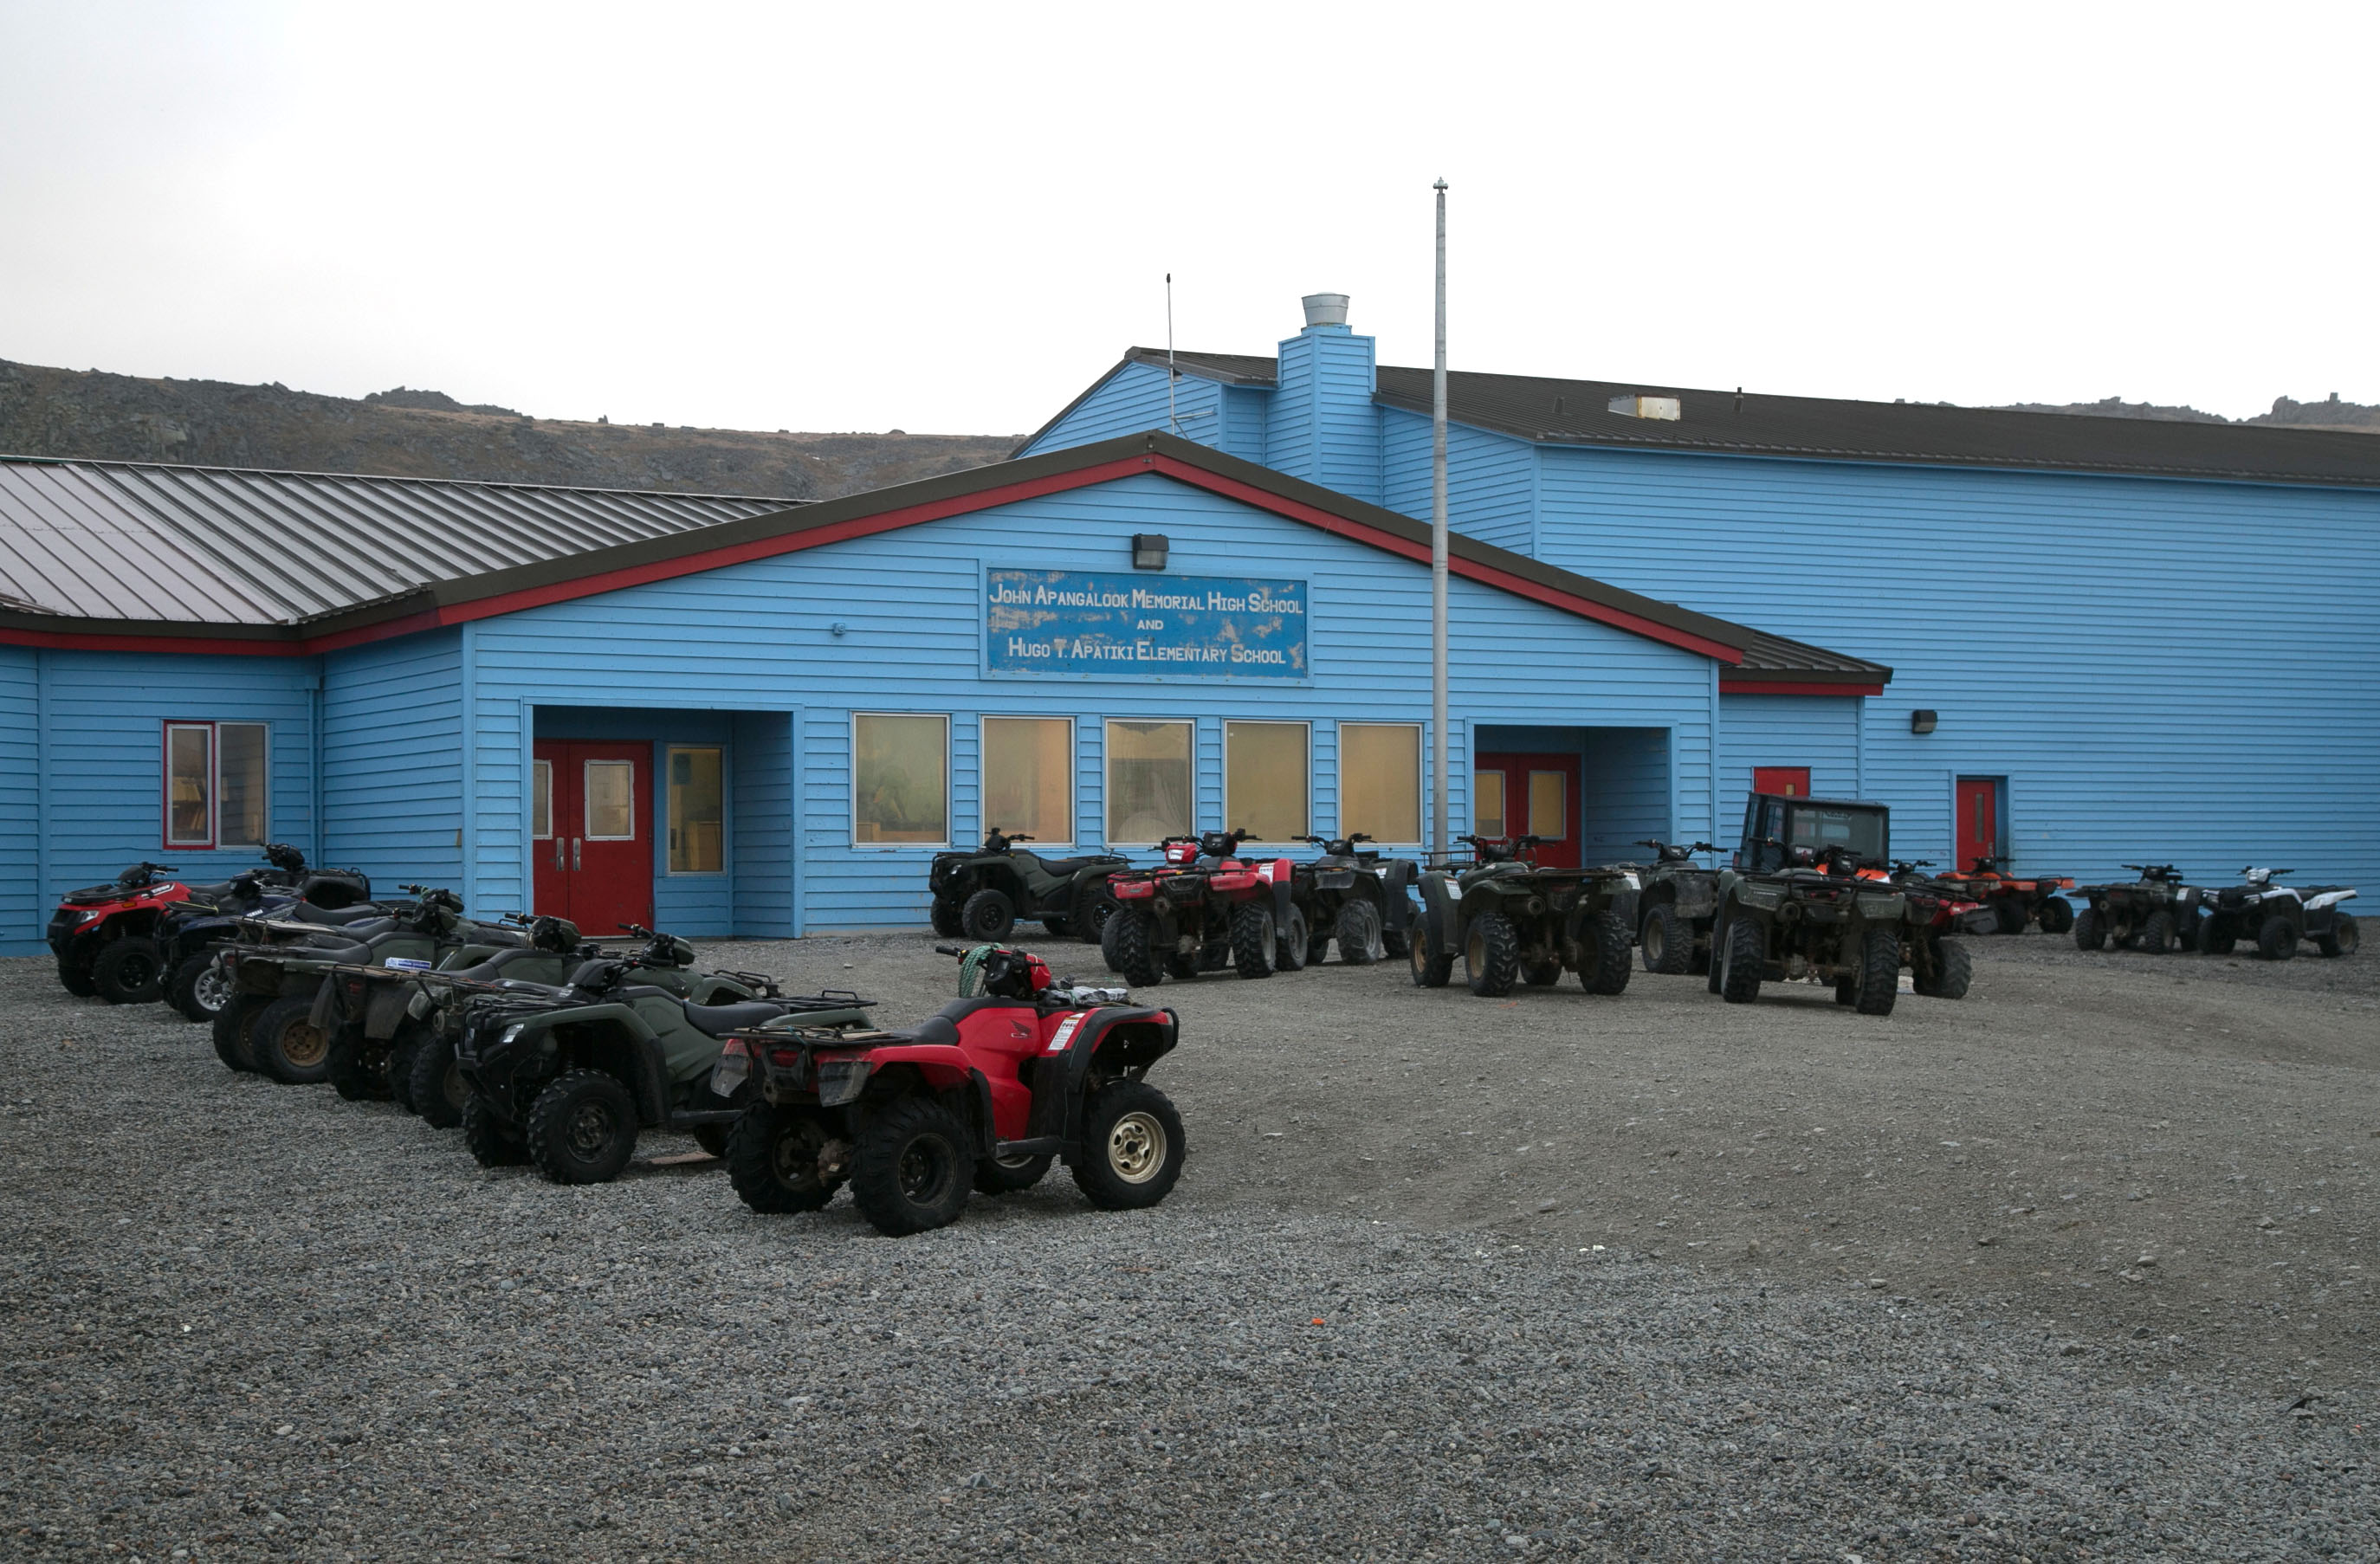 Travels in Remote Alaska Lead to More Remote Travels (U S